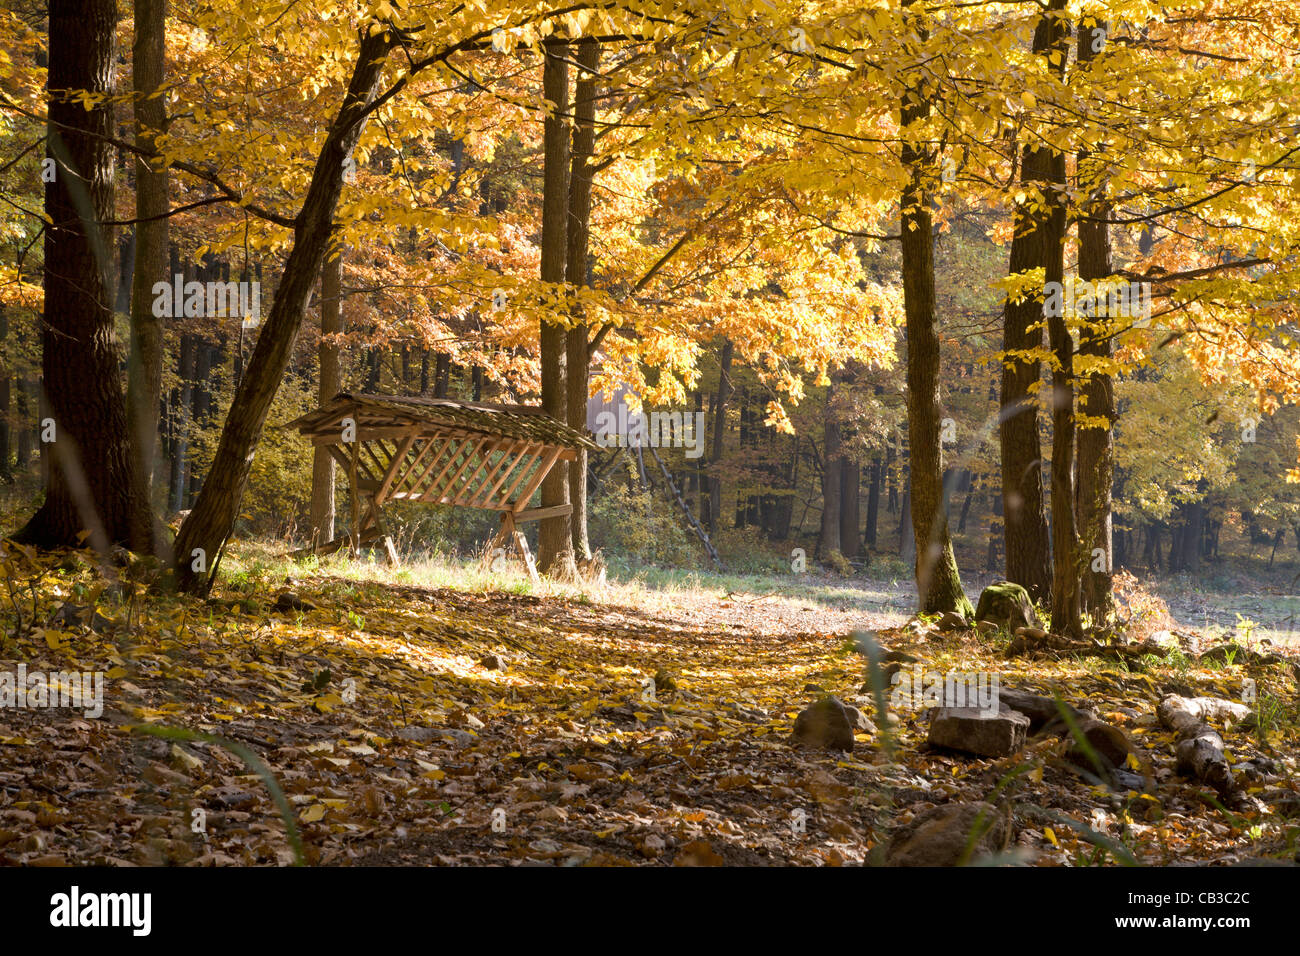 crib in autumn forest - Stock Image